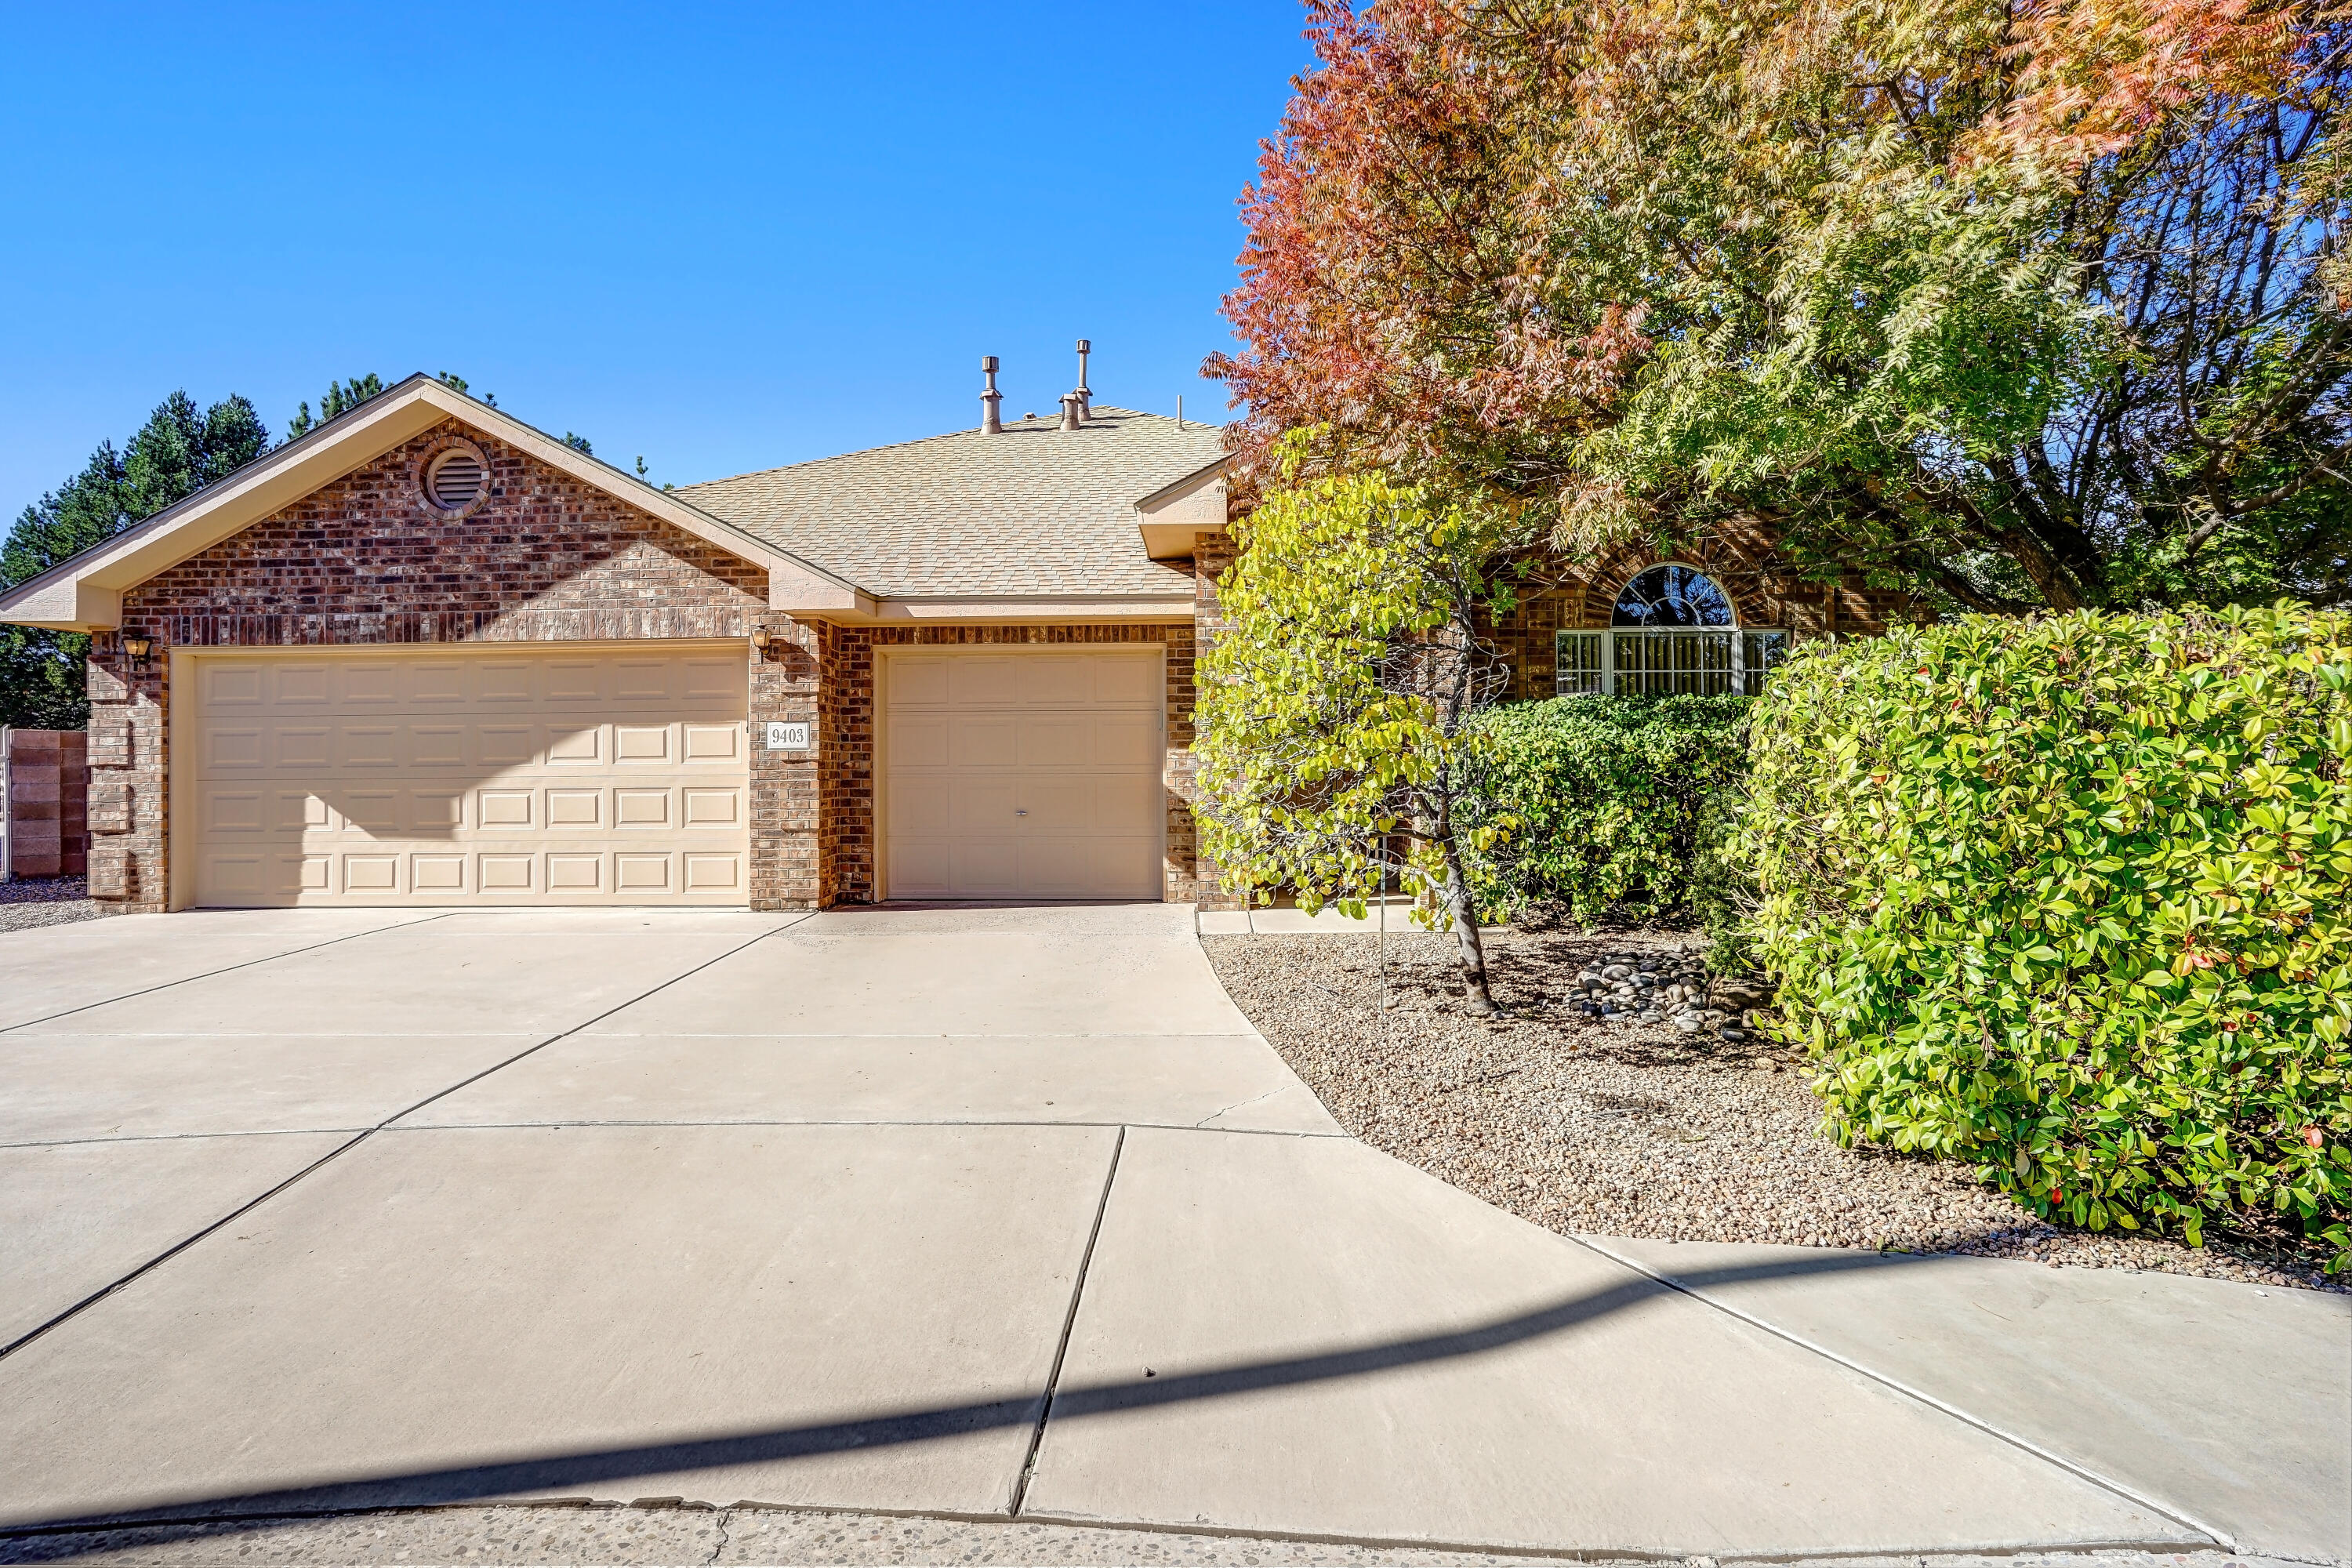 Welcome to this lovely brick single story home in Ventana Ranch.  Hard to find 1 story with a 3 car garage, plenty of room for all your toys.  This home features 2 living spaces and multiple dining options too.  Master suite is spacious and is separate from the other bedrooms.  Large master bath with separate tub, dual vanities and a walk-in closet.  Back bedrooms share a jack & jill bathroom.  Updates include brand new carpet, and a newer HVAC system with AC and newer roof in recent years too.  Come see this wonderful home today.